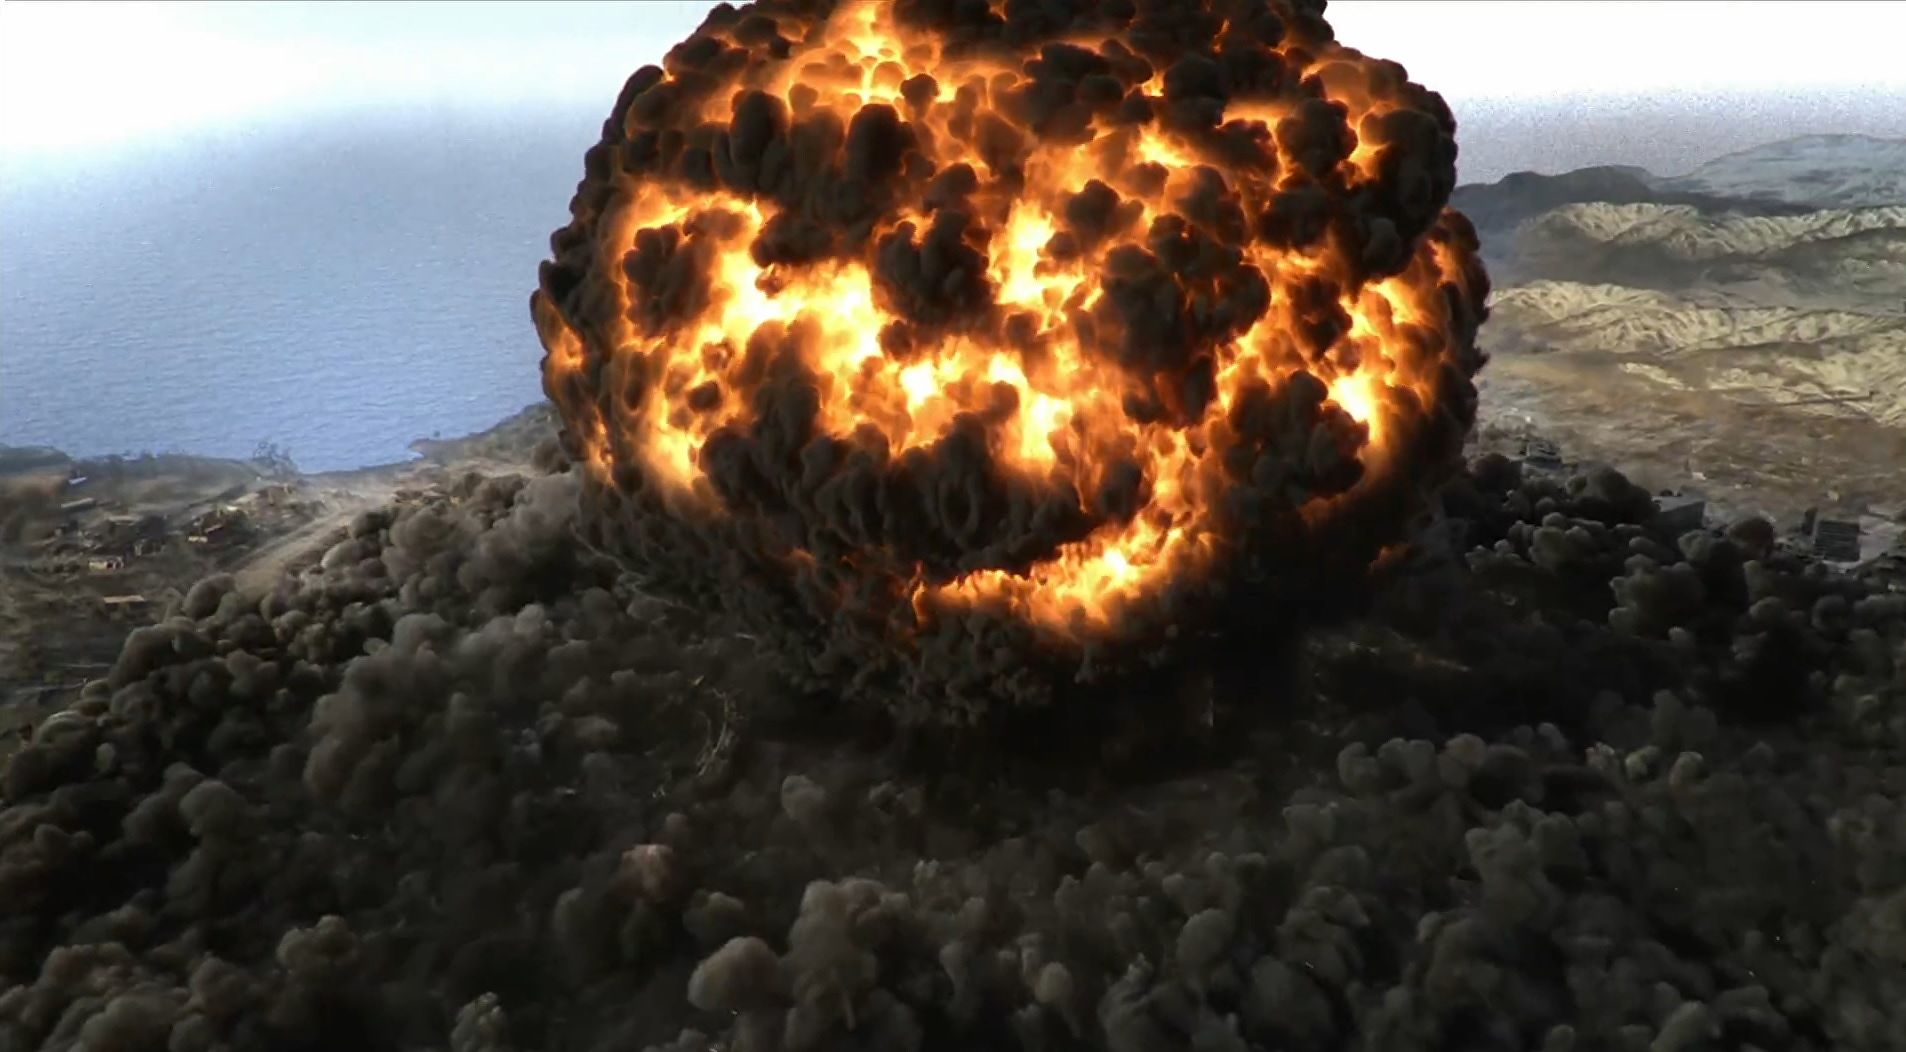 Call Of Duty: Warzone has indeed nuked Verdansk today